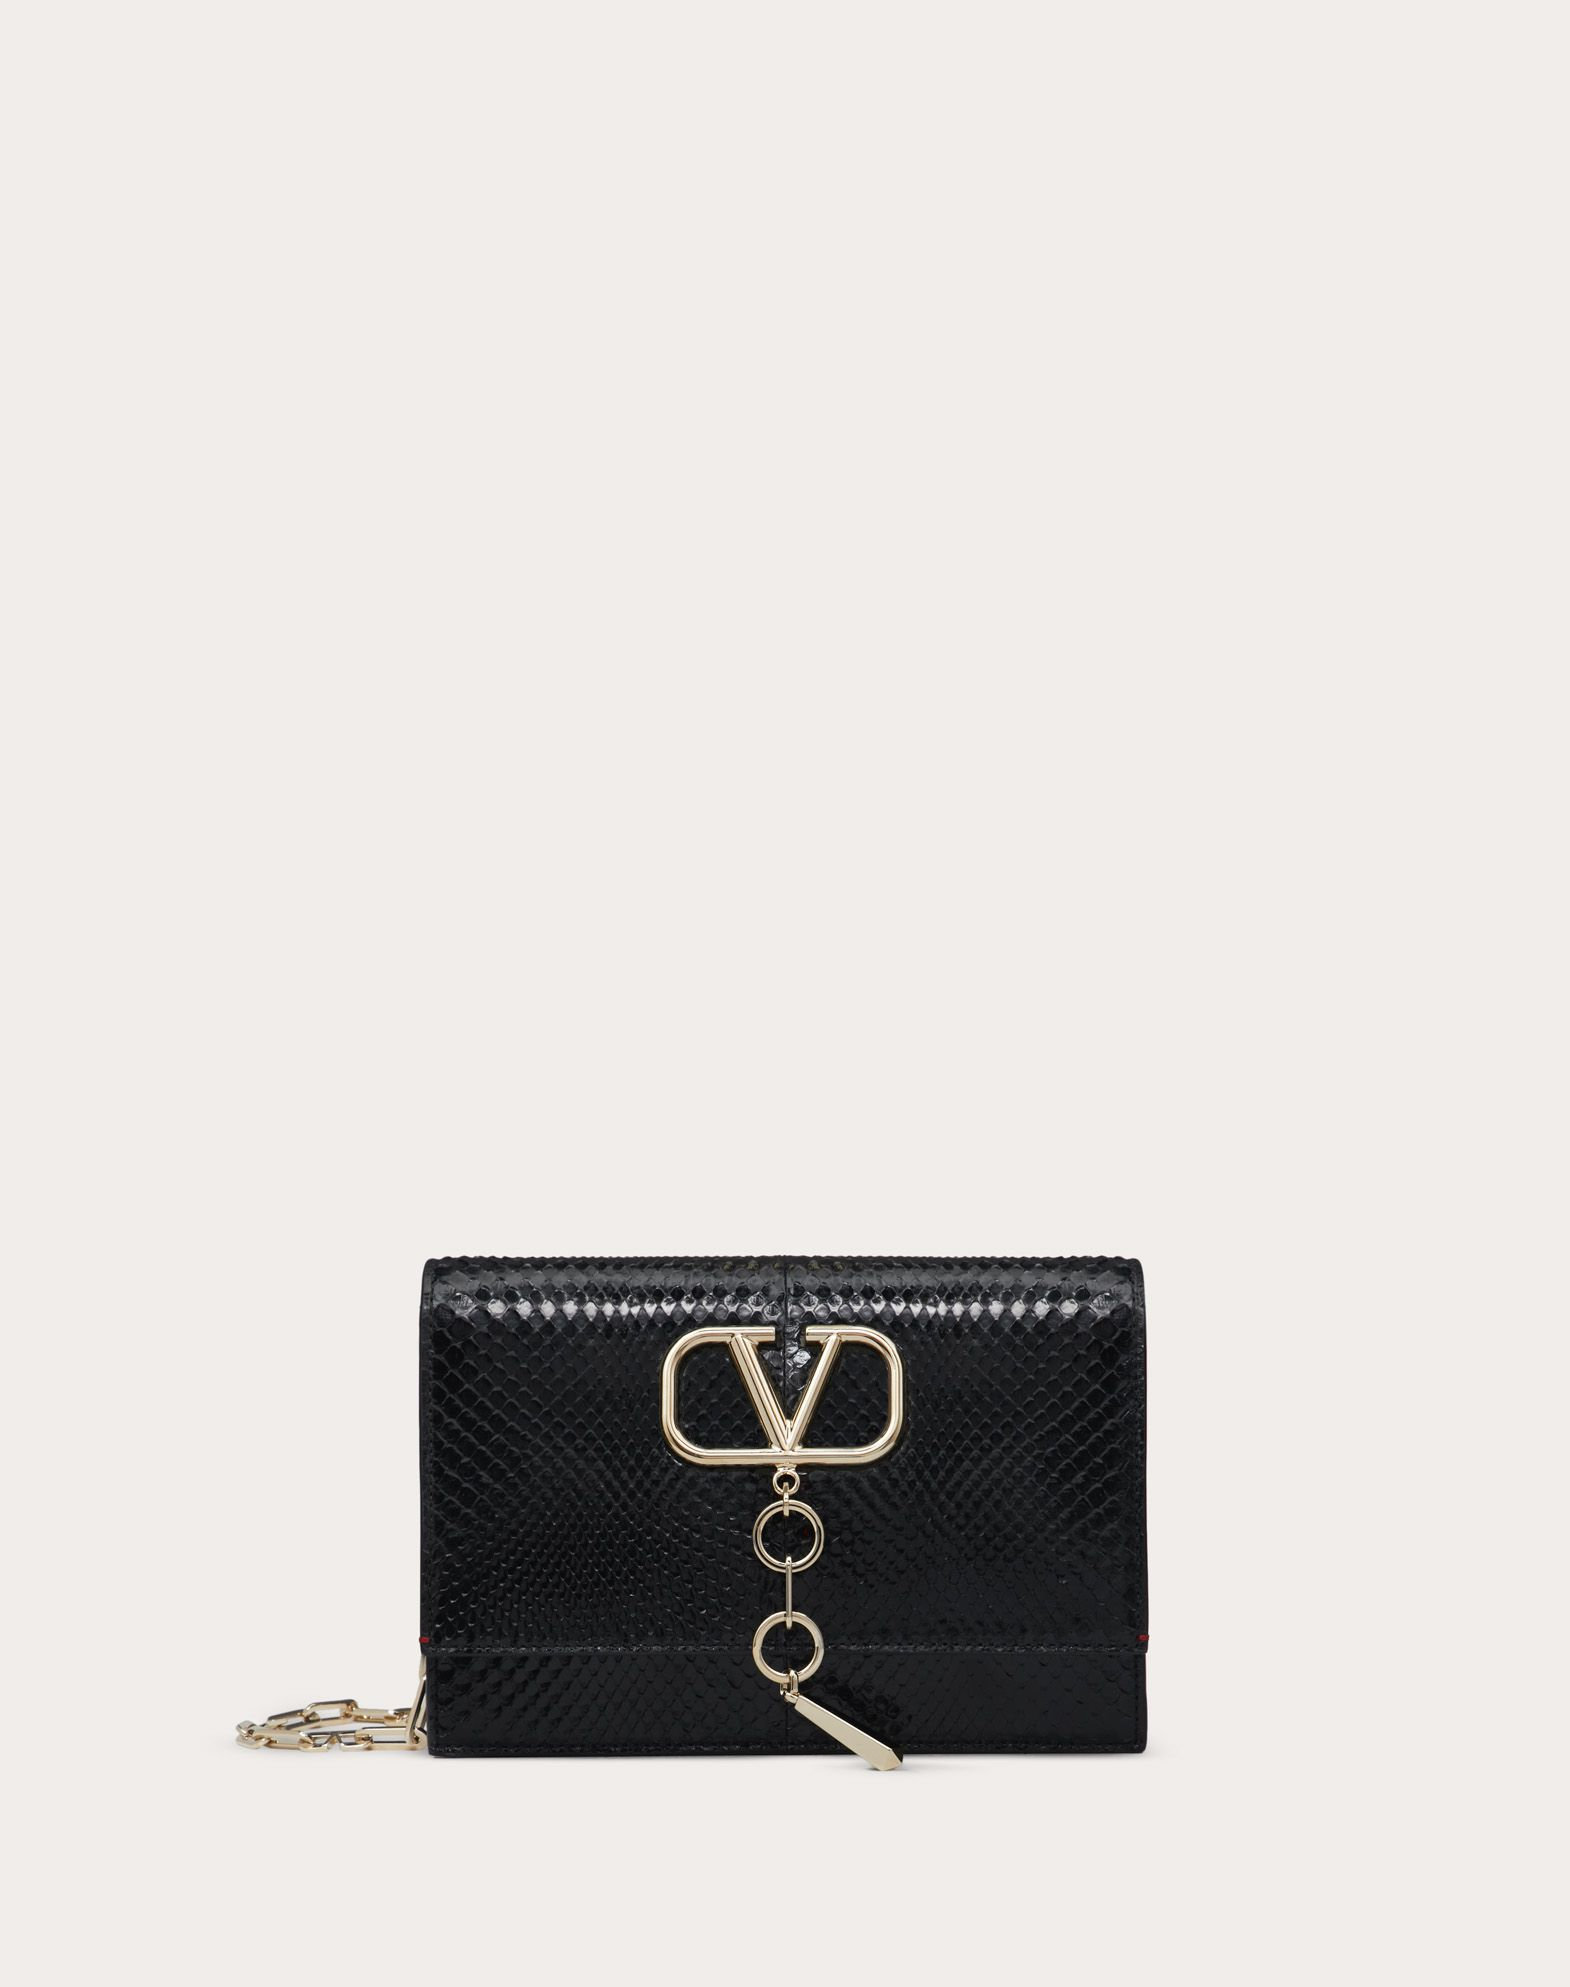 Small VCASE Glossy Python Bag